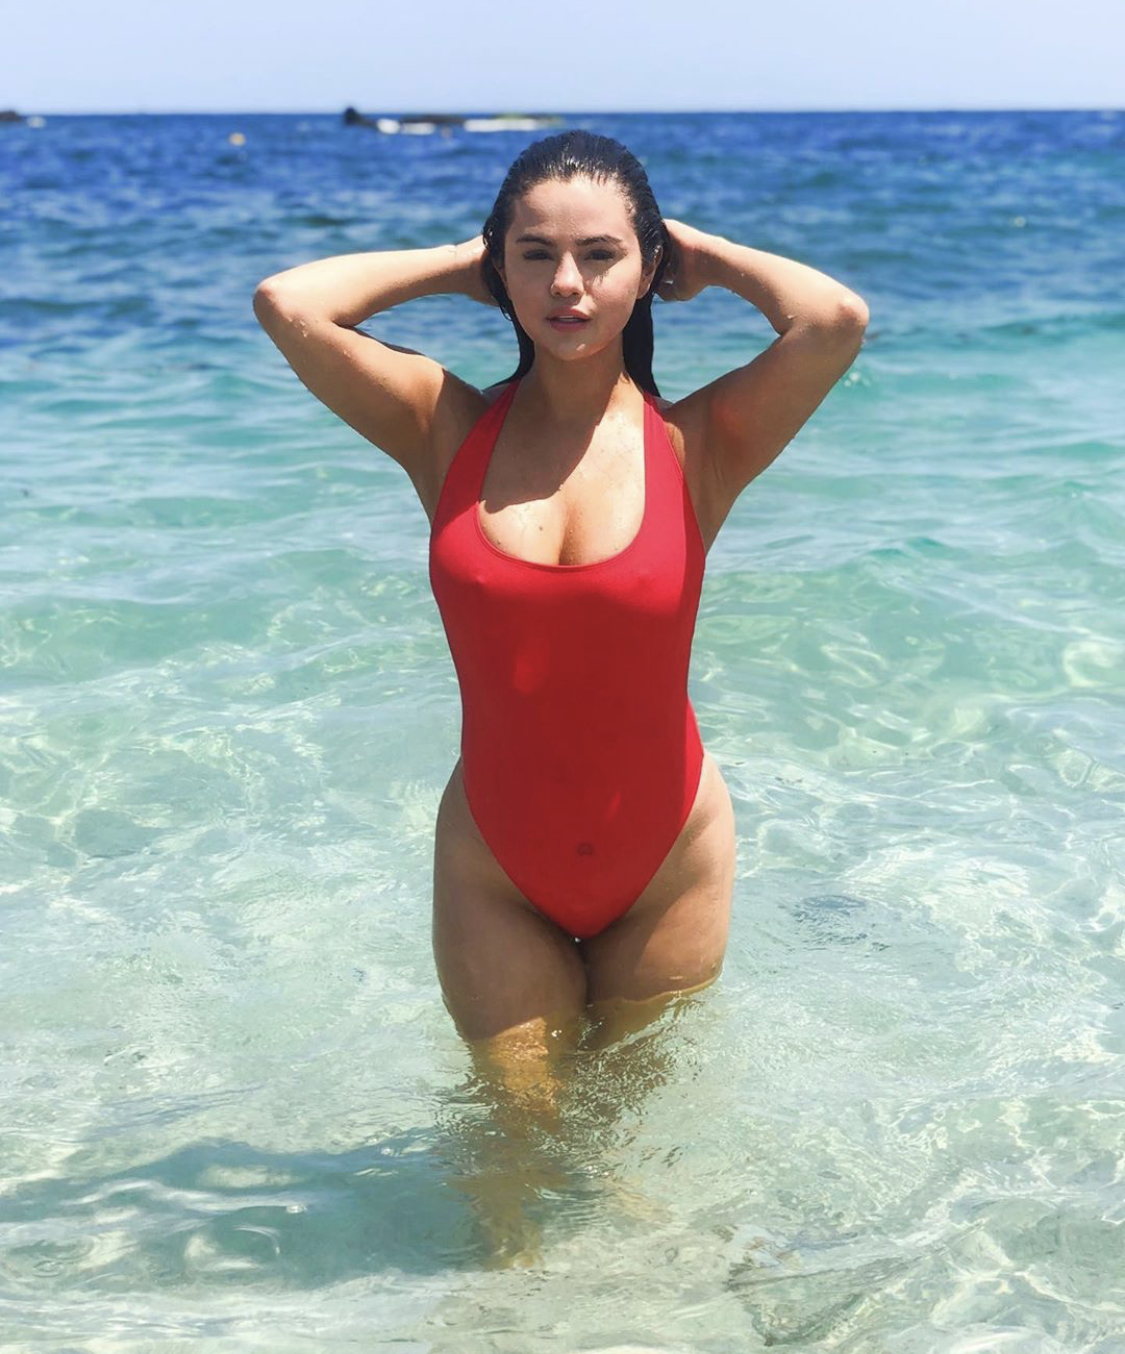 Selena Gomez Hot Red Swimsuit By The Sea - Selena Gomez Hot Red Swimsuit By The Sea